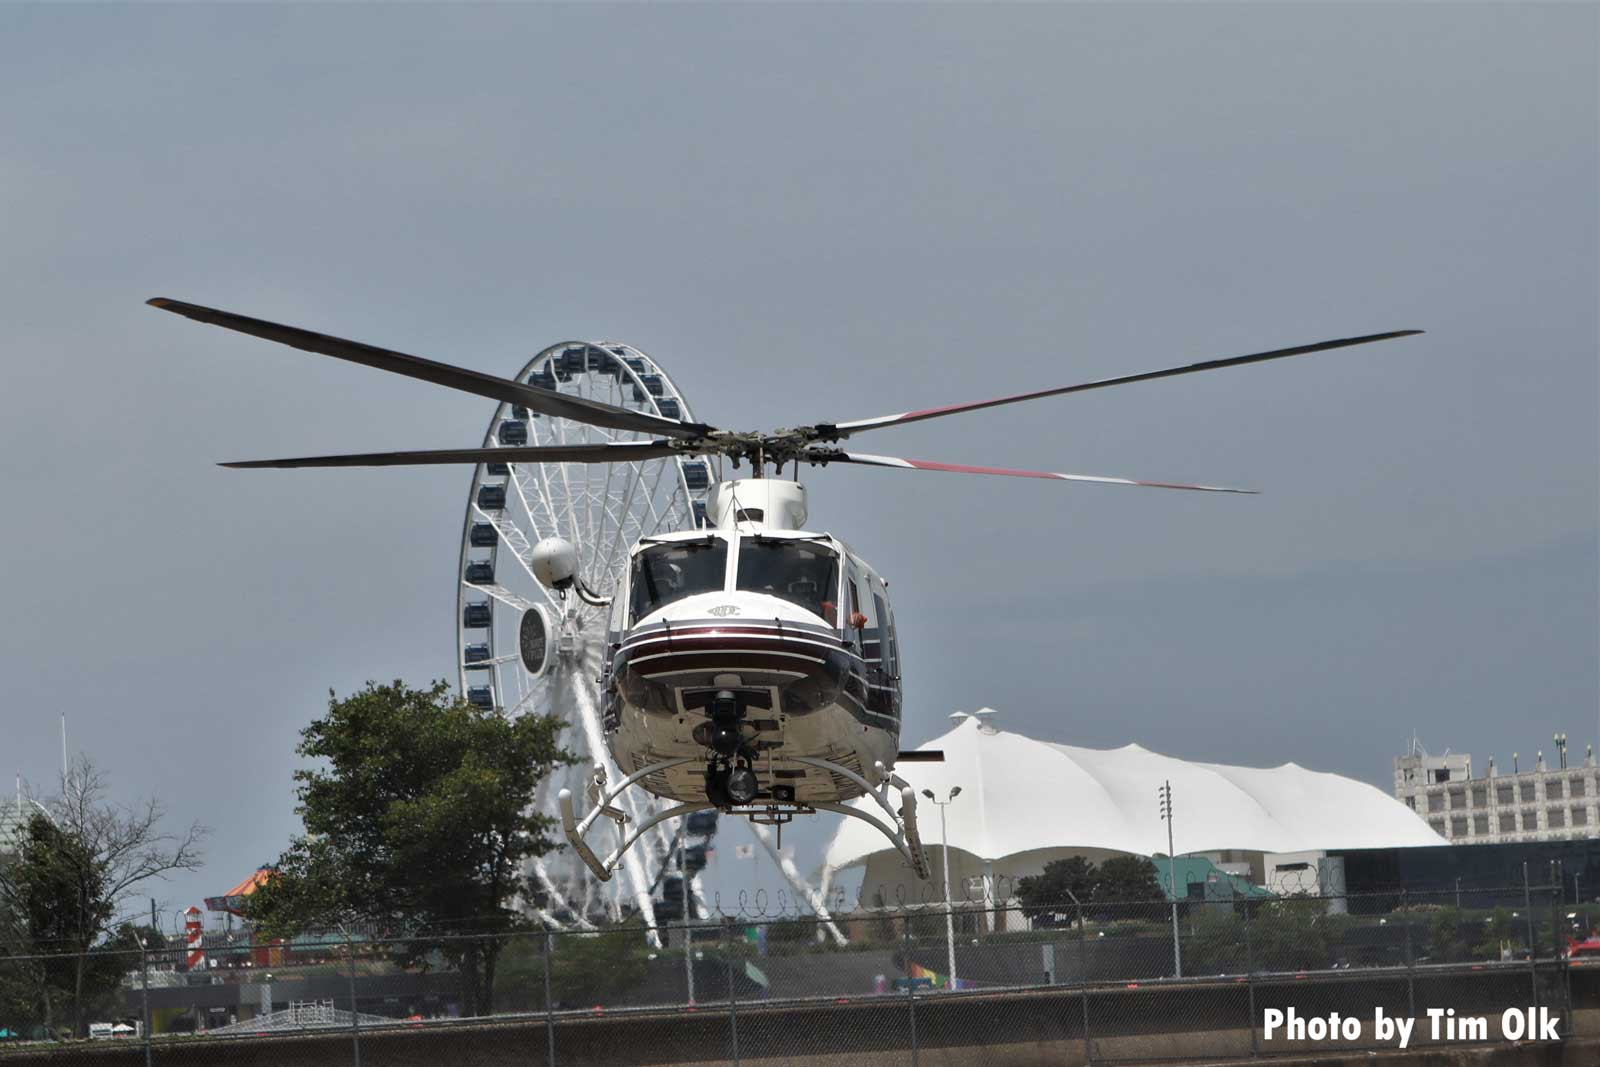 Chicago Fire Department copter